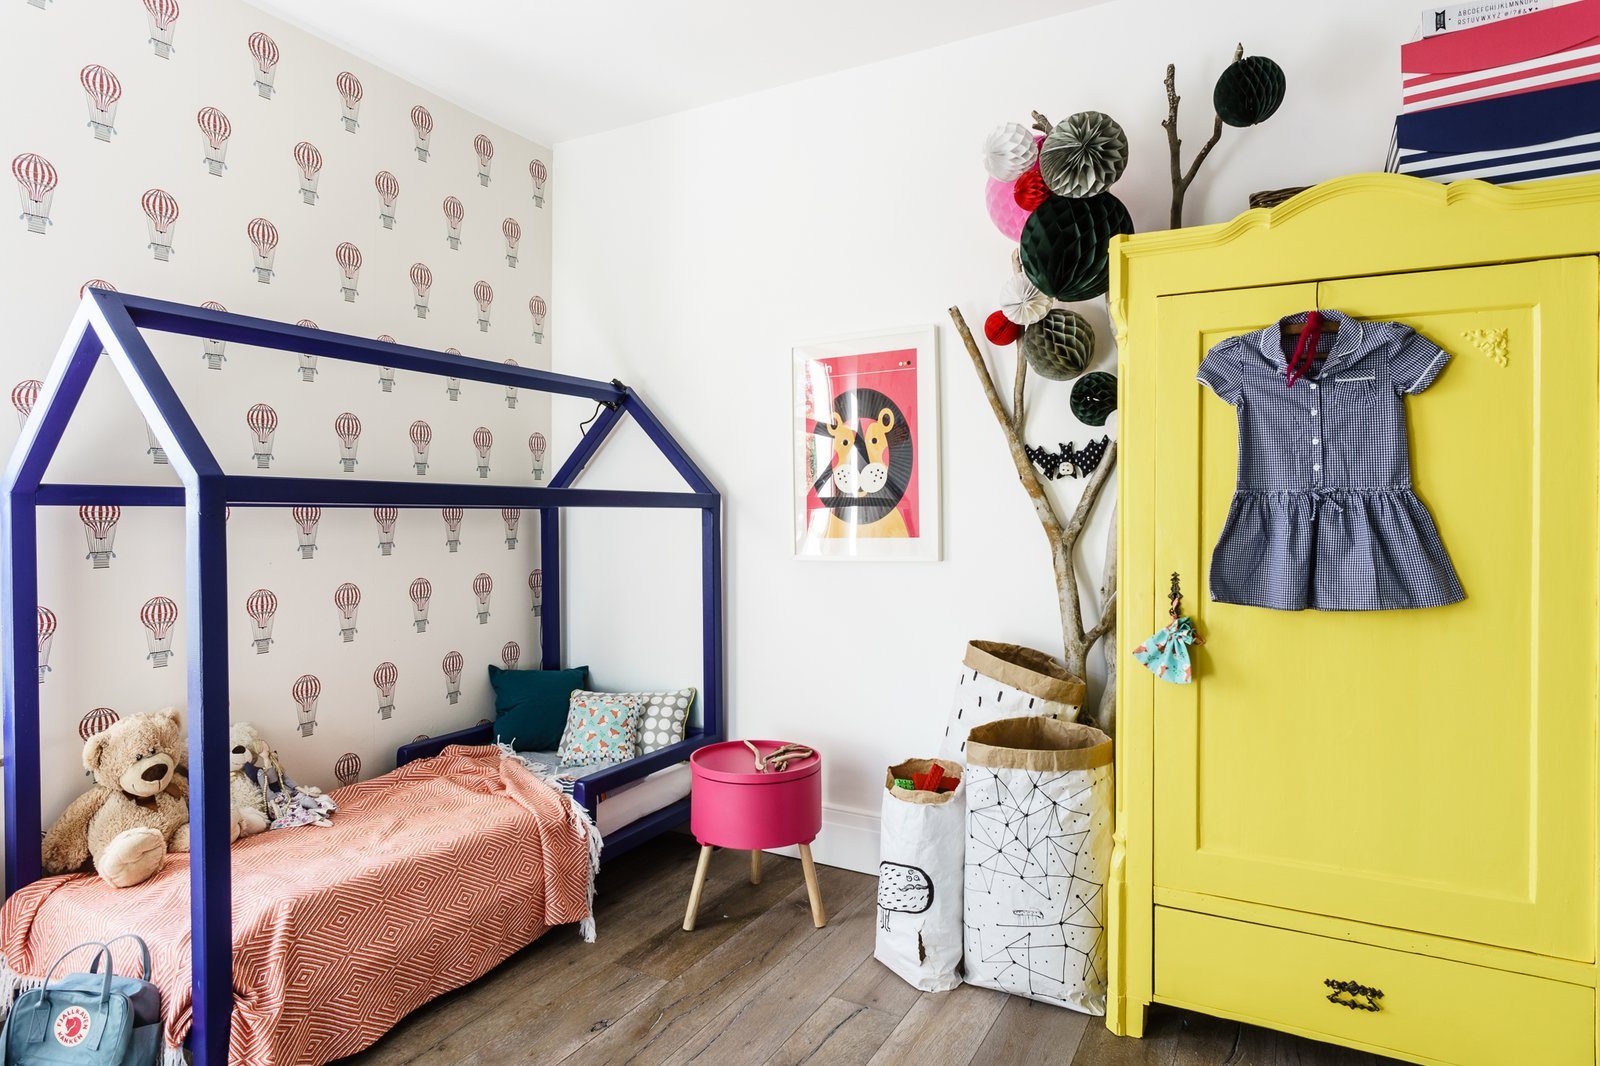 Kids Room, Bedroom Room Type, Playroom Room Type, Bed, Light Hardwood Floor, Pre-Teen Age, Toddler Age, Dresser, and Neutral Gender These 8 Toddler Room Ideas Will Make You Want to Be a Kid Again - Photo 12 of 12 -